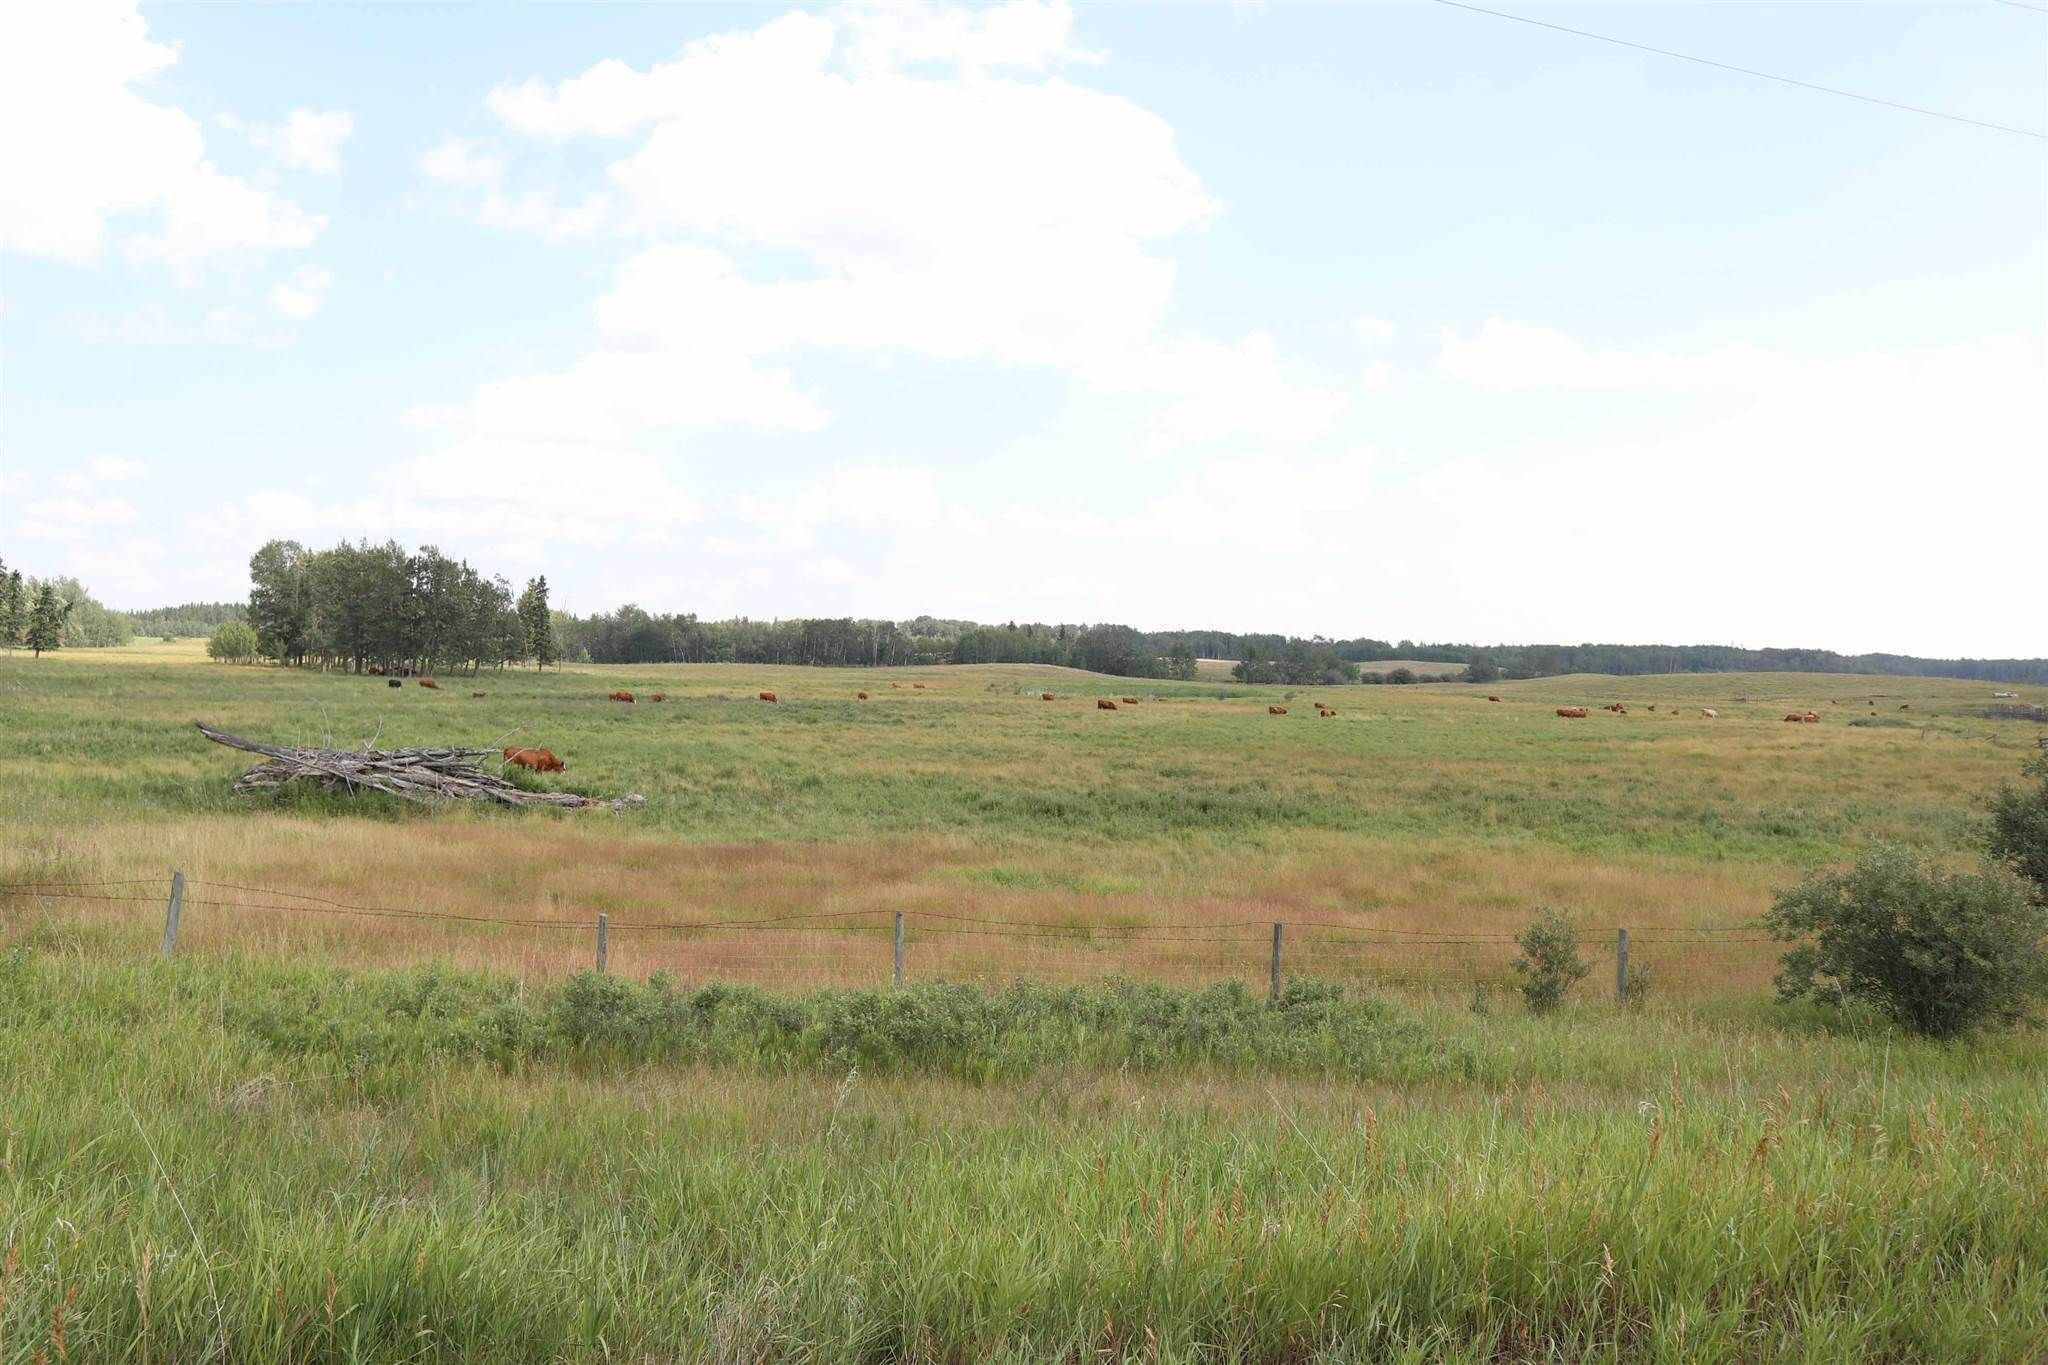 Main Photo: Twp 510 RR 33: Rural Leduc County Rural Land/Vacant Lot for sale : MLS®# E4256128